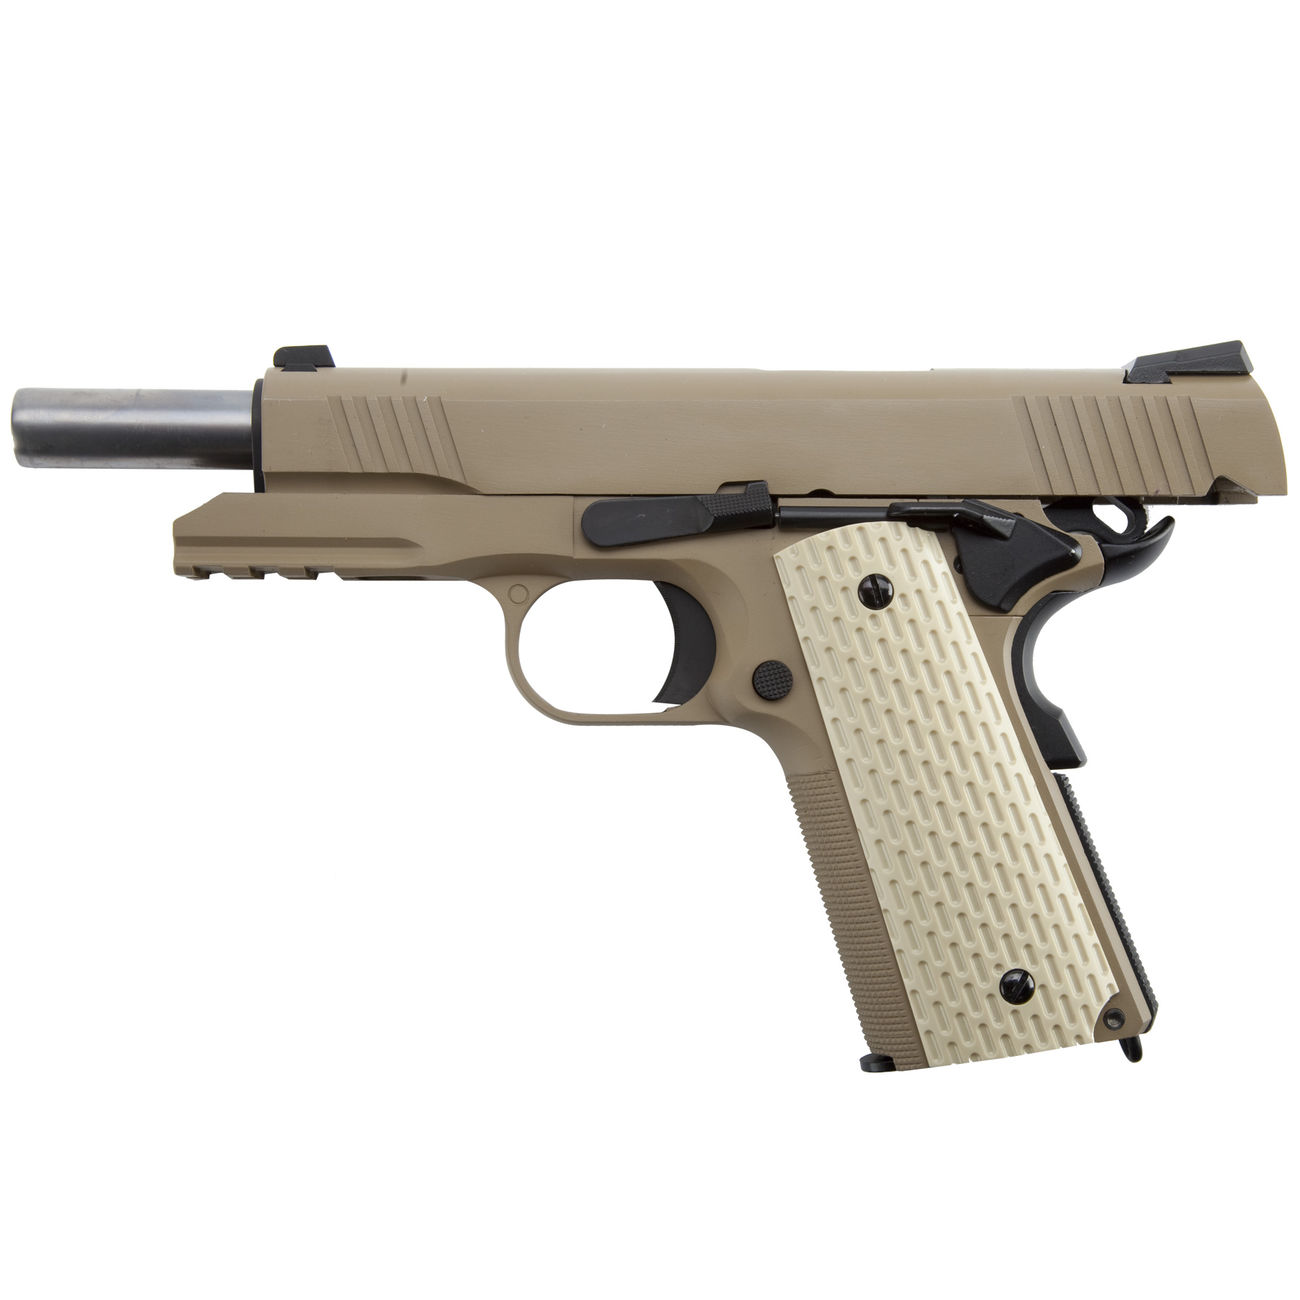 Wei-ETech Kbr-Style Warrior .45 ACP Vollmetall GBB 6mm BB Desert Tan 2